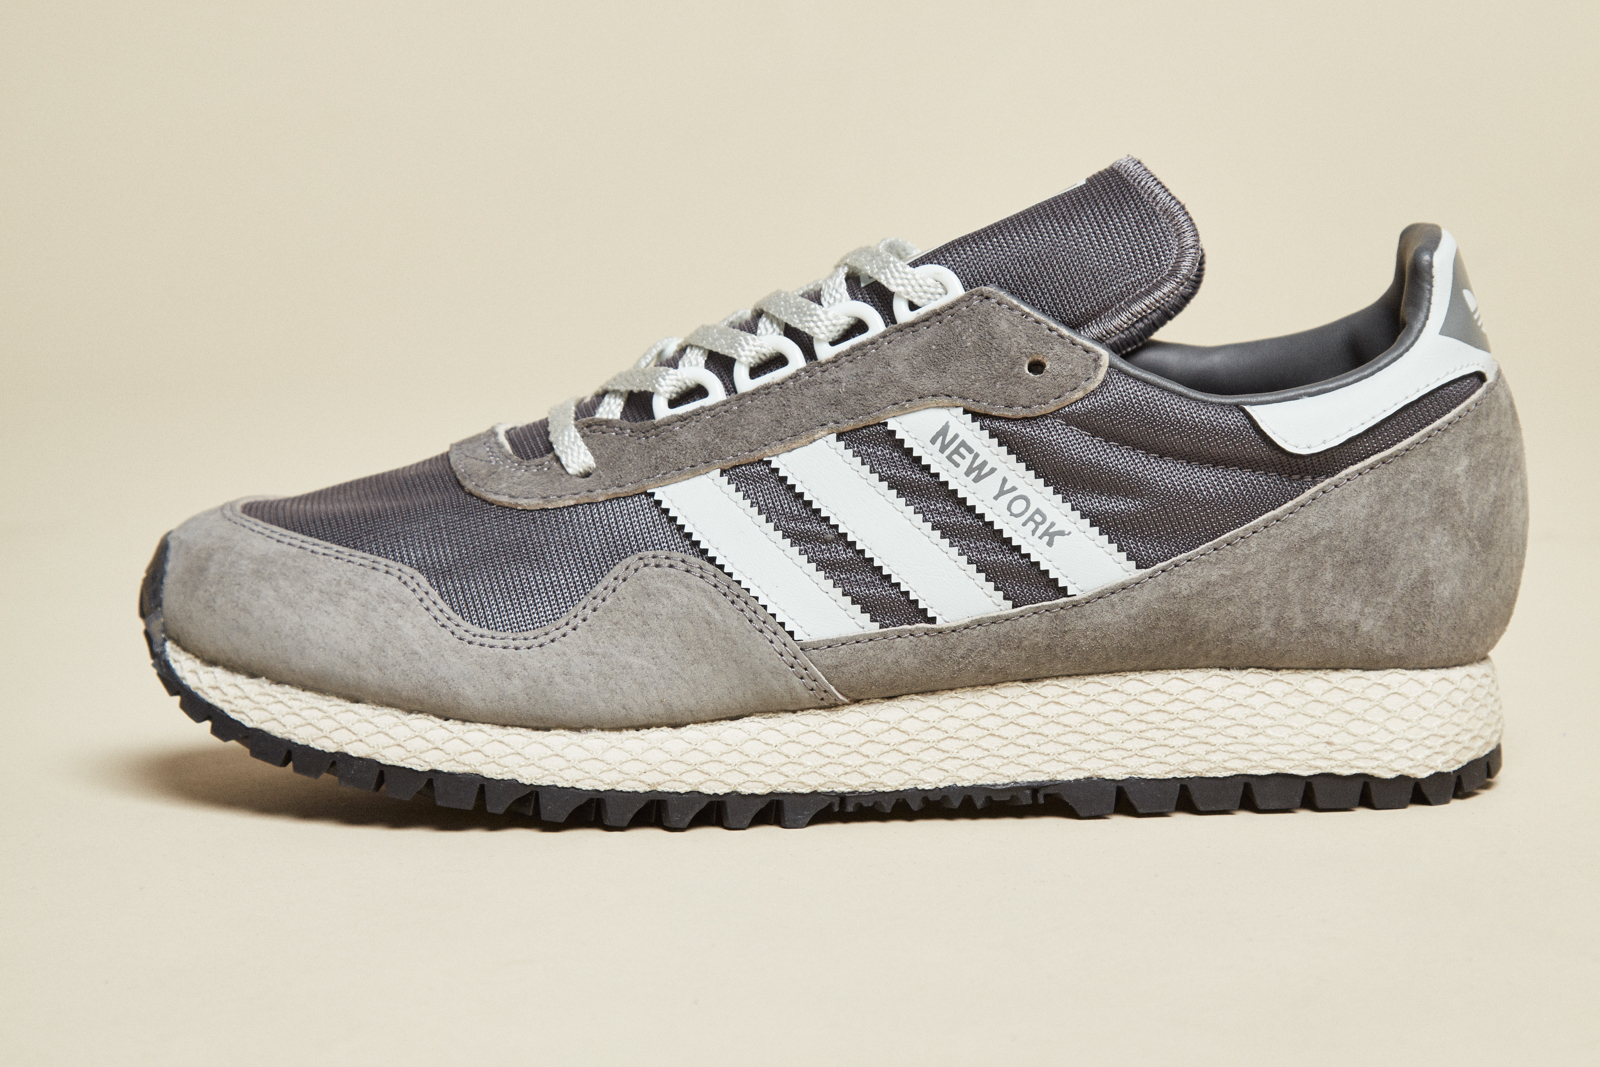 A noticeable feature on the New York is the Dellinger webbing around the midsole, a shock absorbing mechanic popular in adidas runners throughout 1980's.